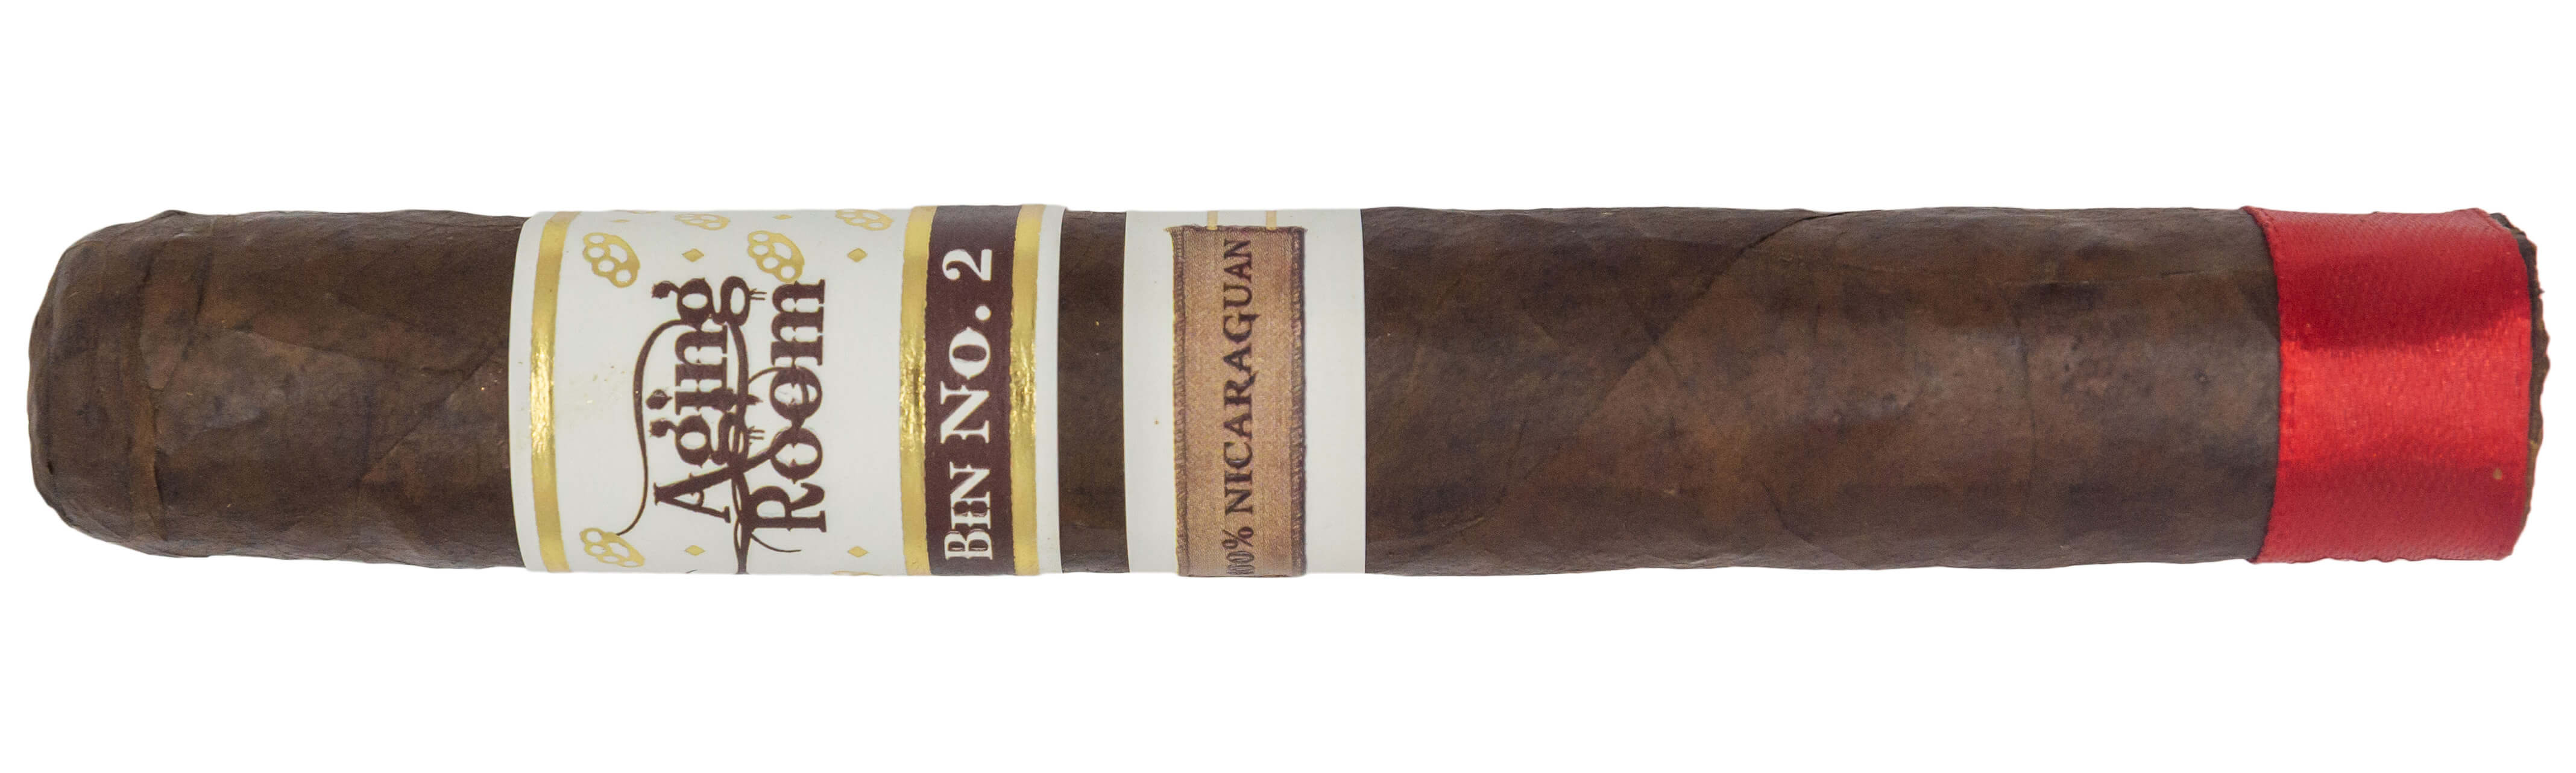 Blind Cigar Review: Aging Room | Bin No. 2 C Major